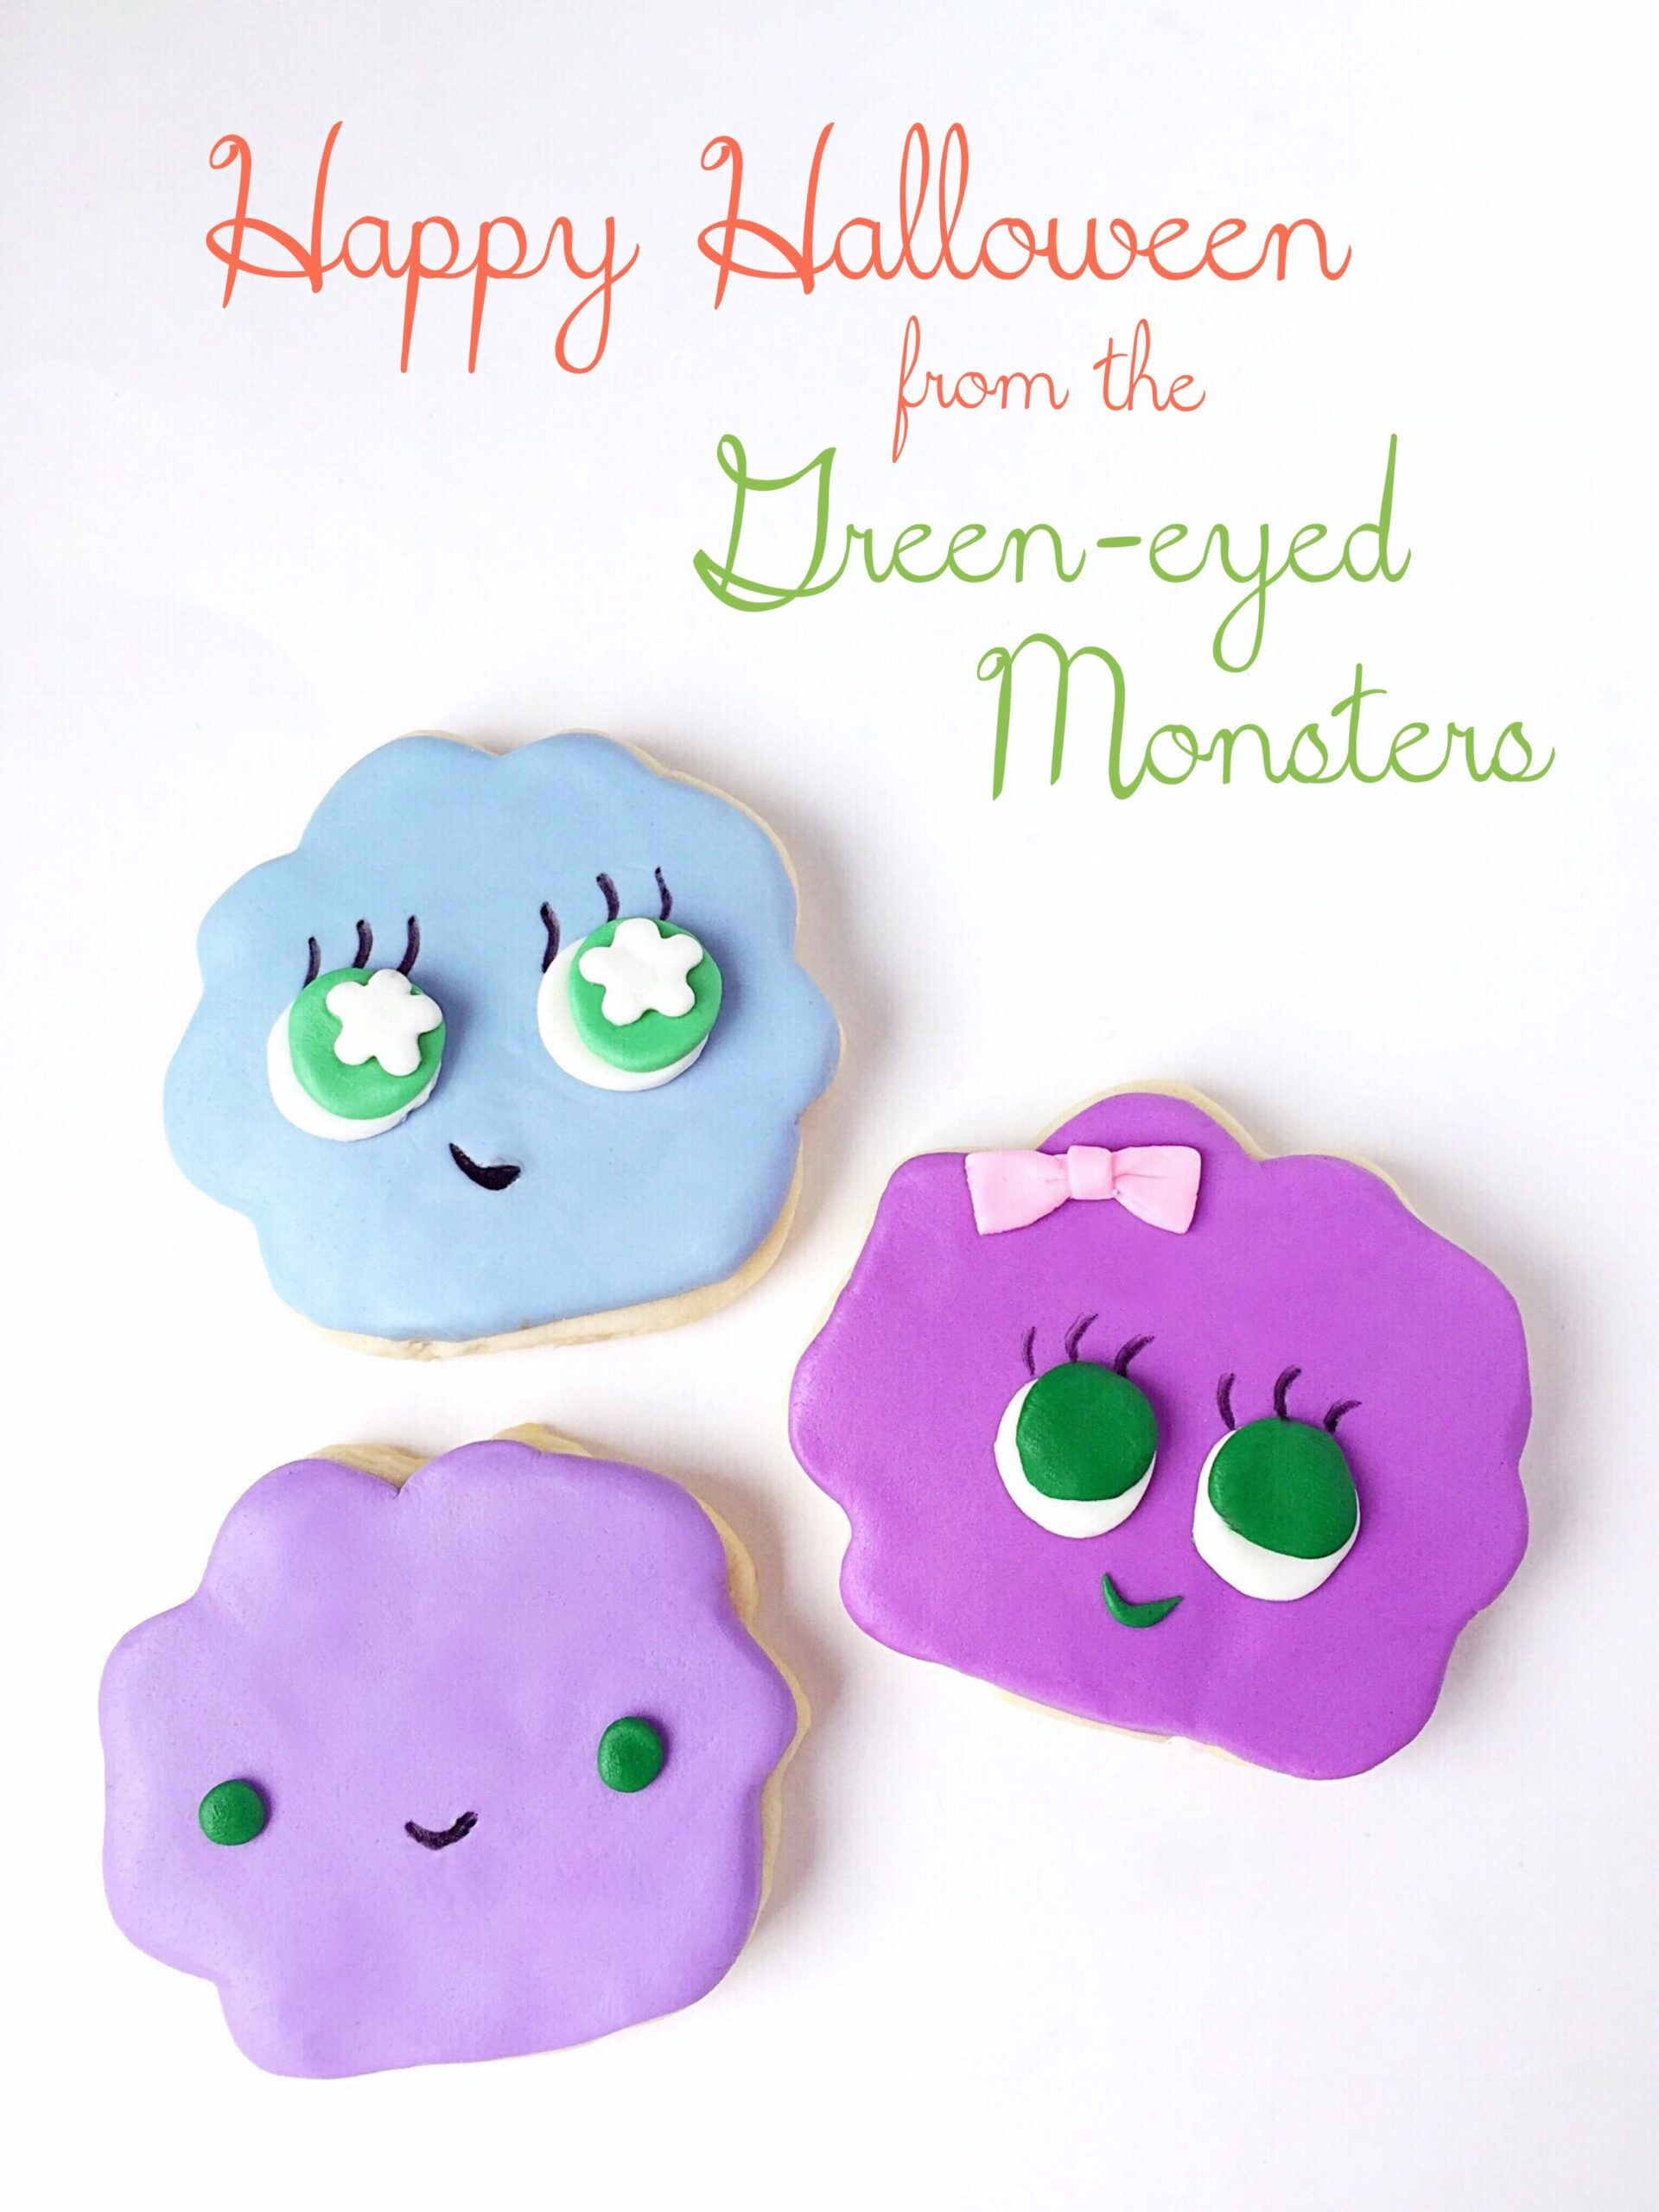 Green-eyed monster Halloween cookies